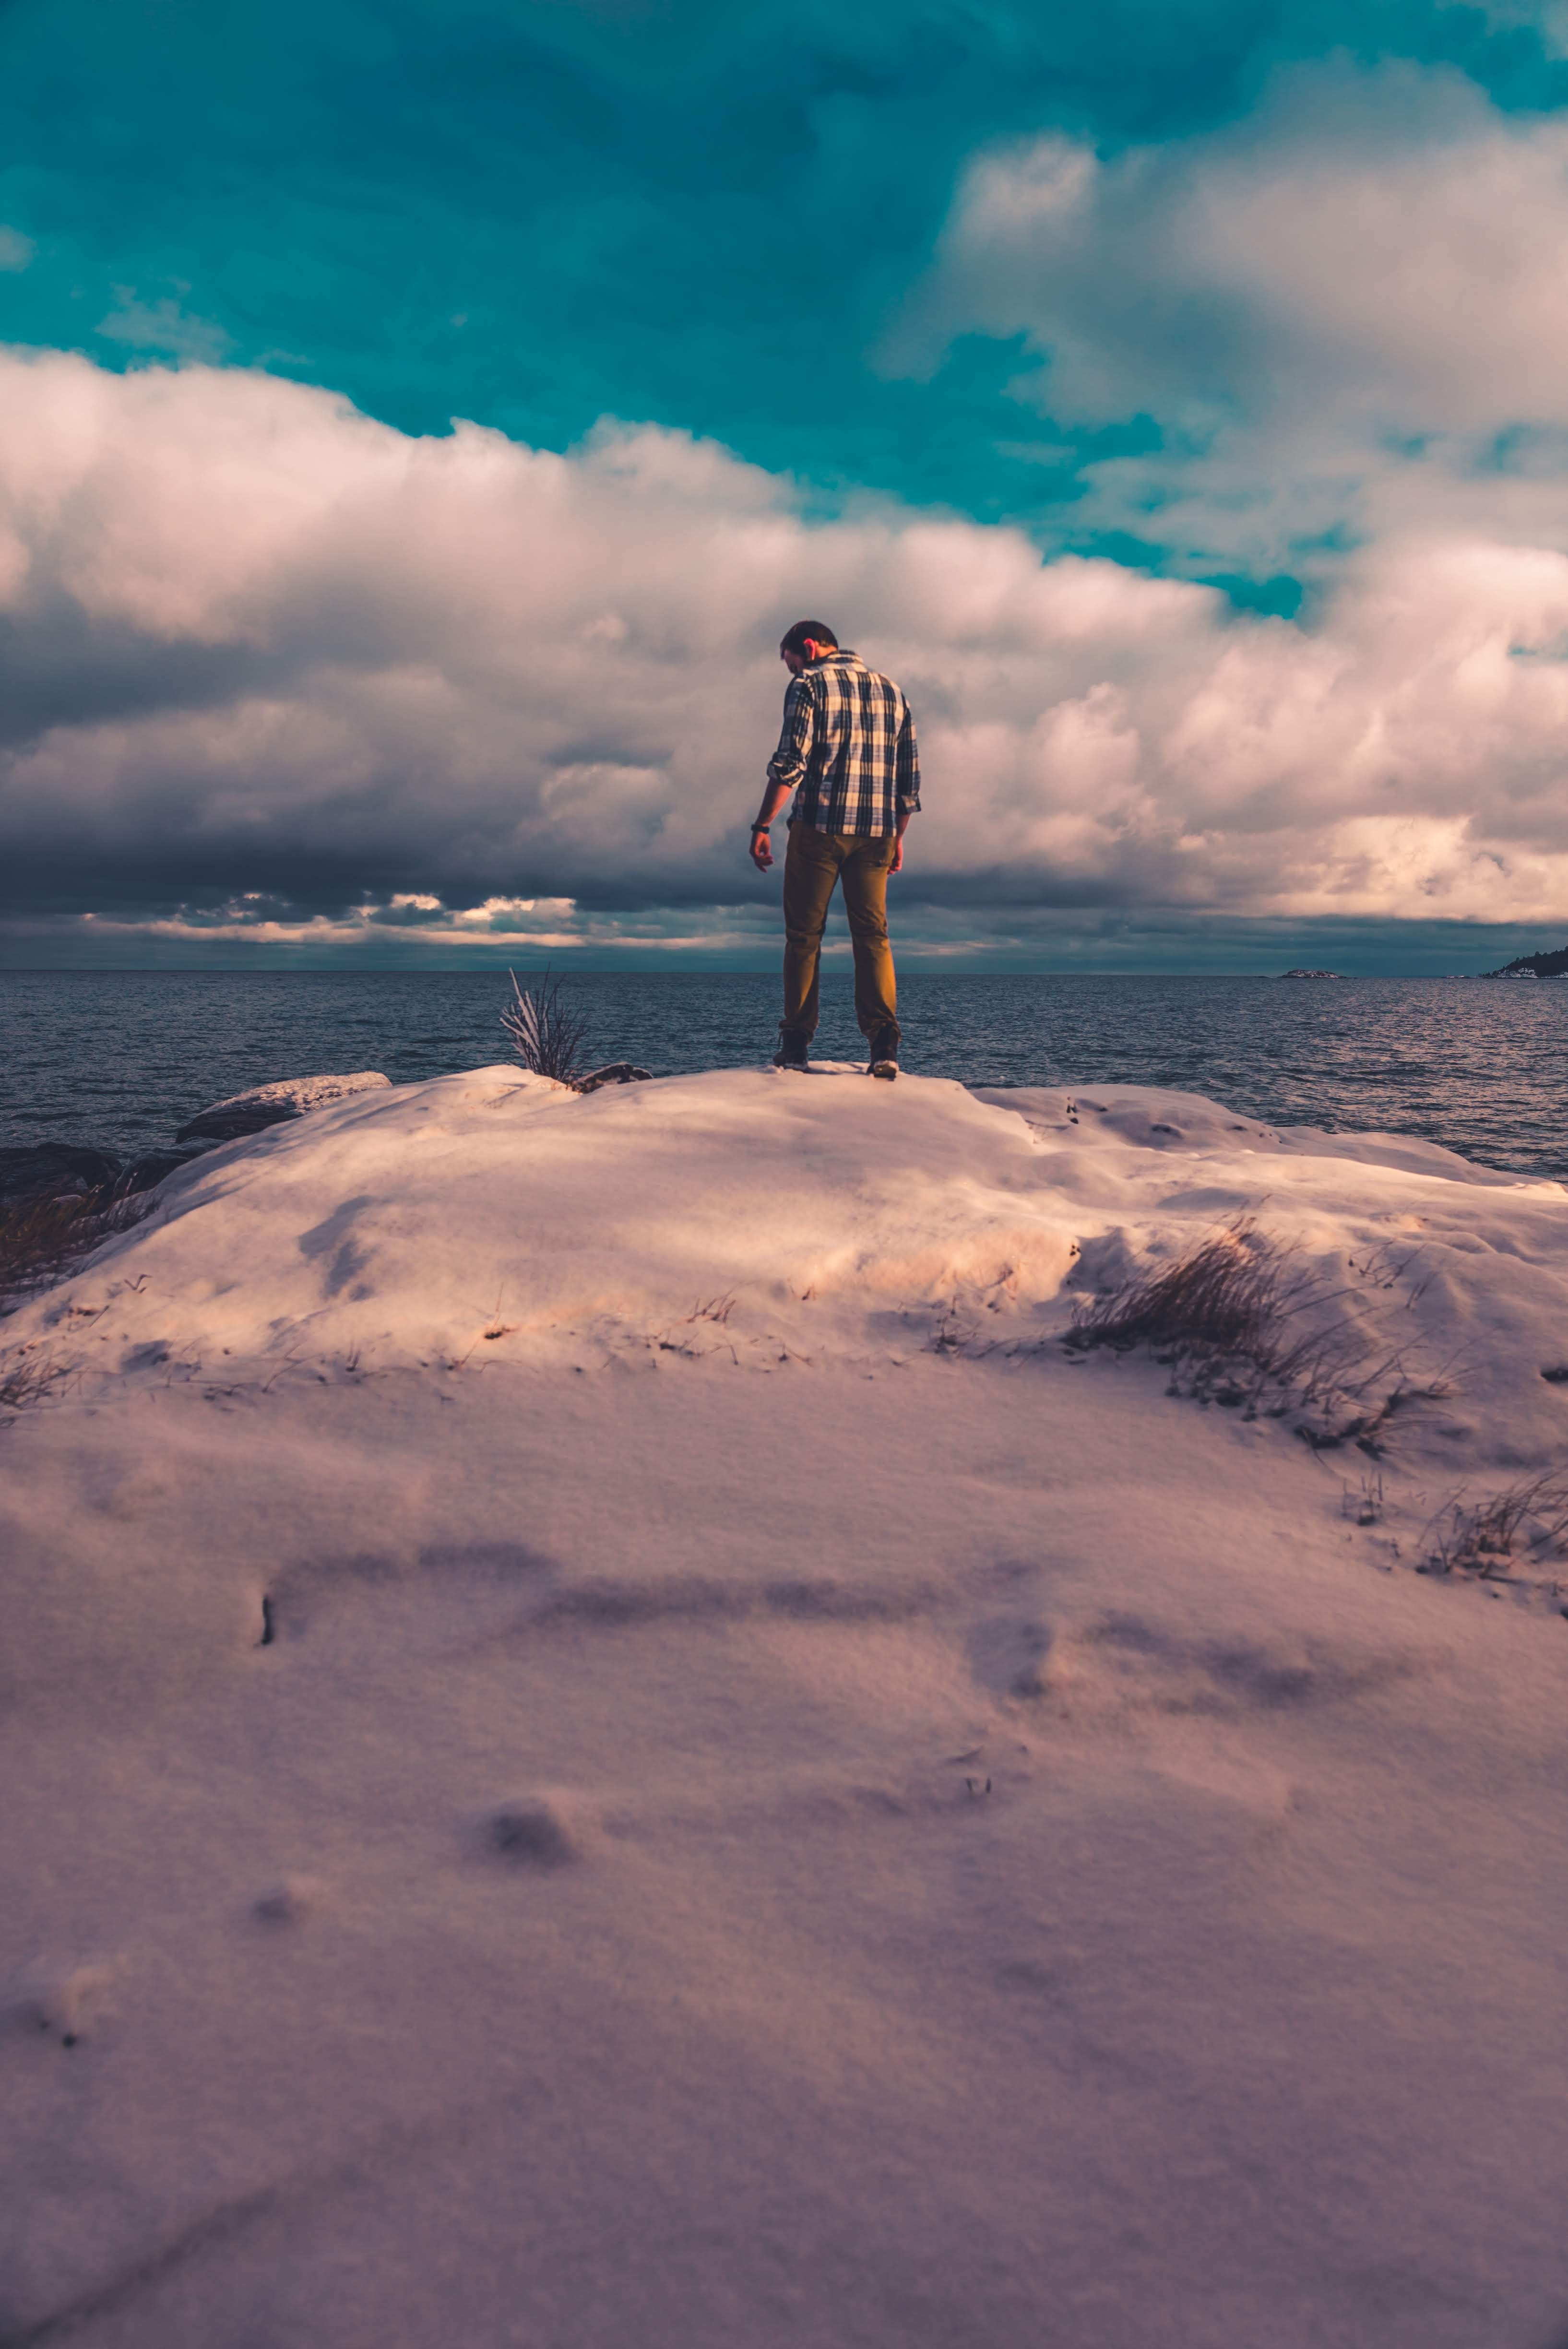 man standing on snow covered land while facing body of water